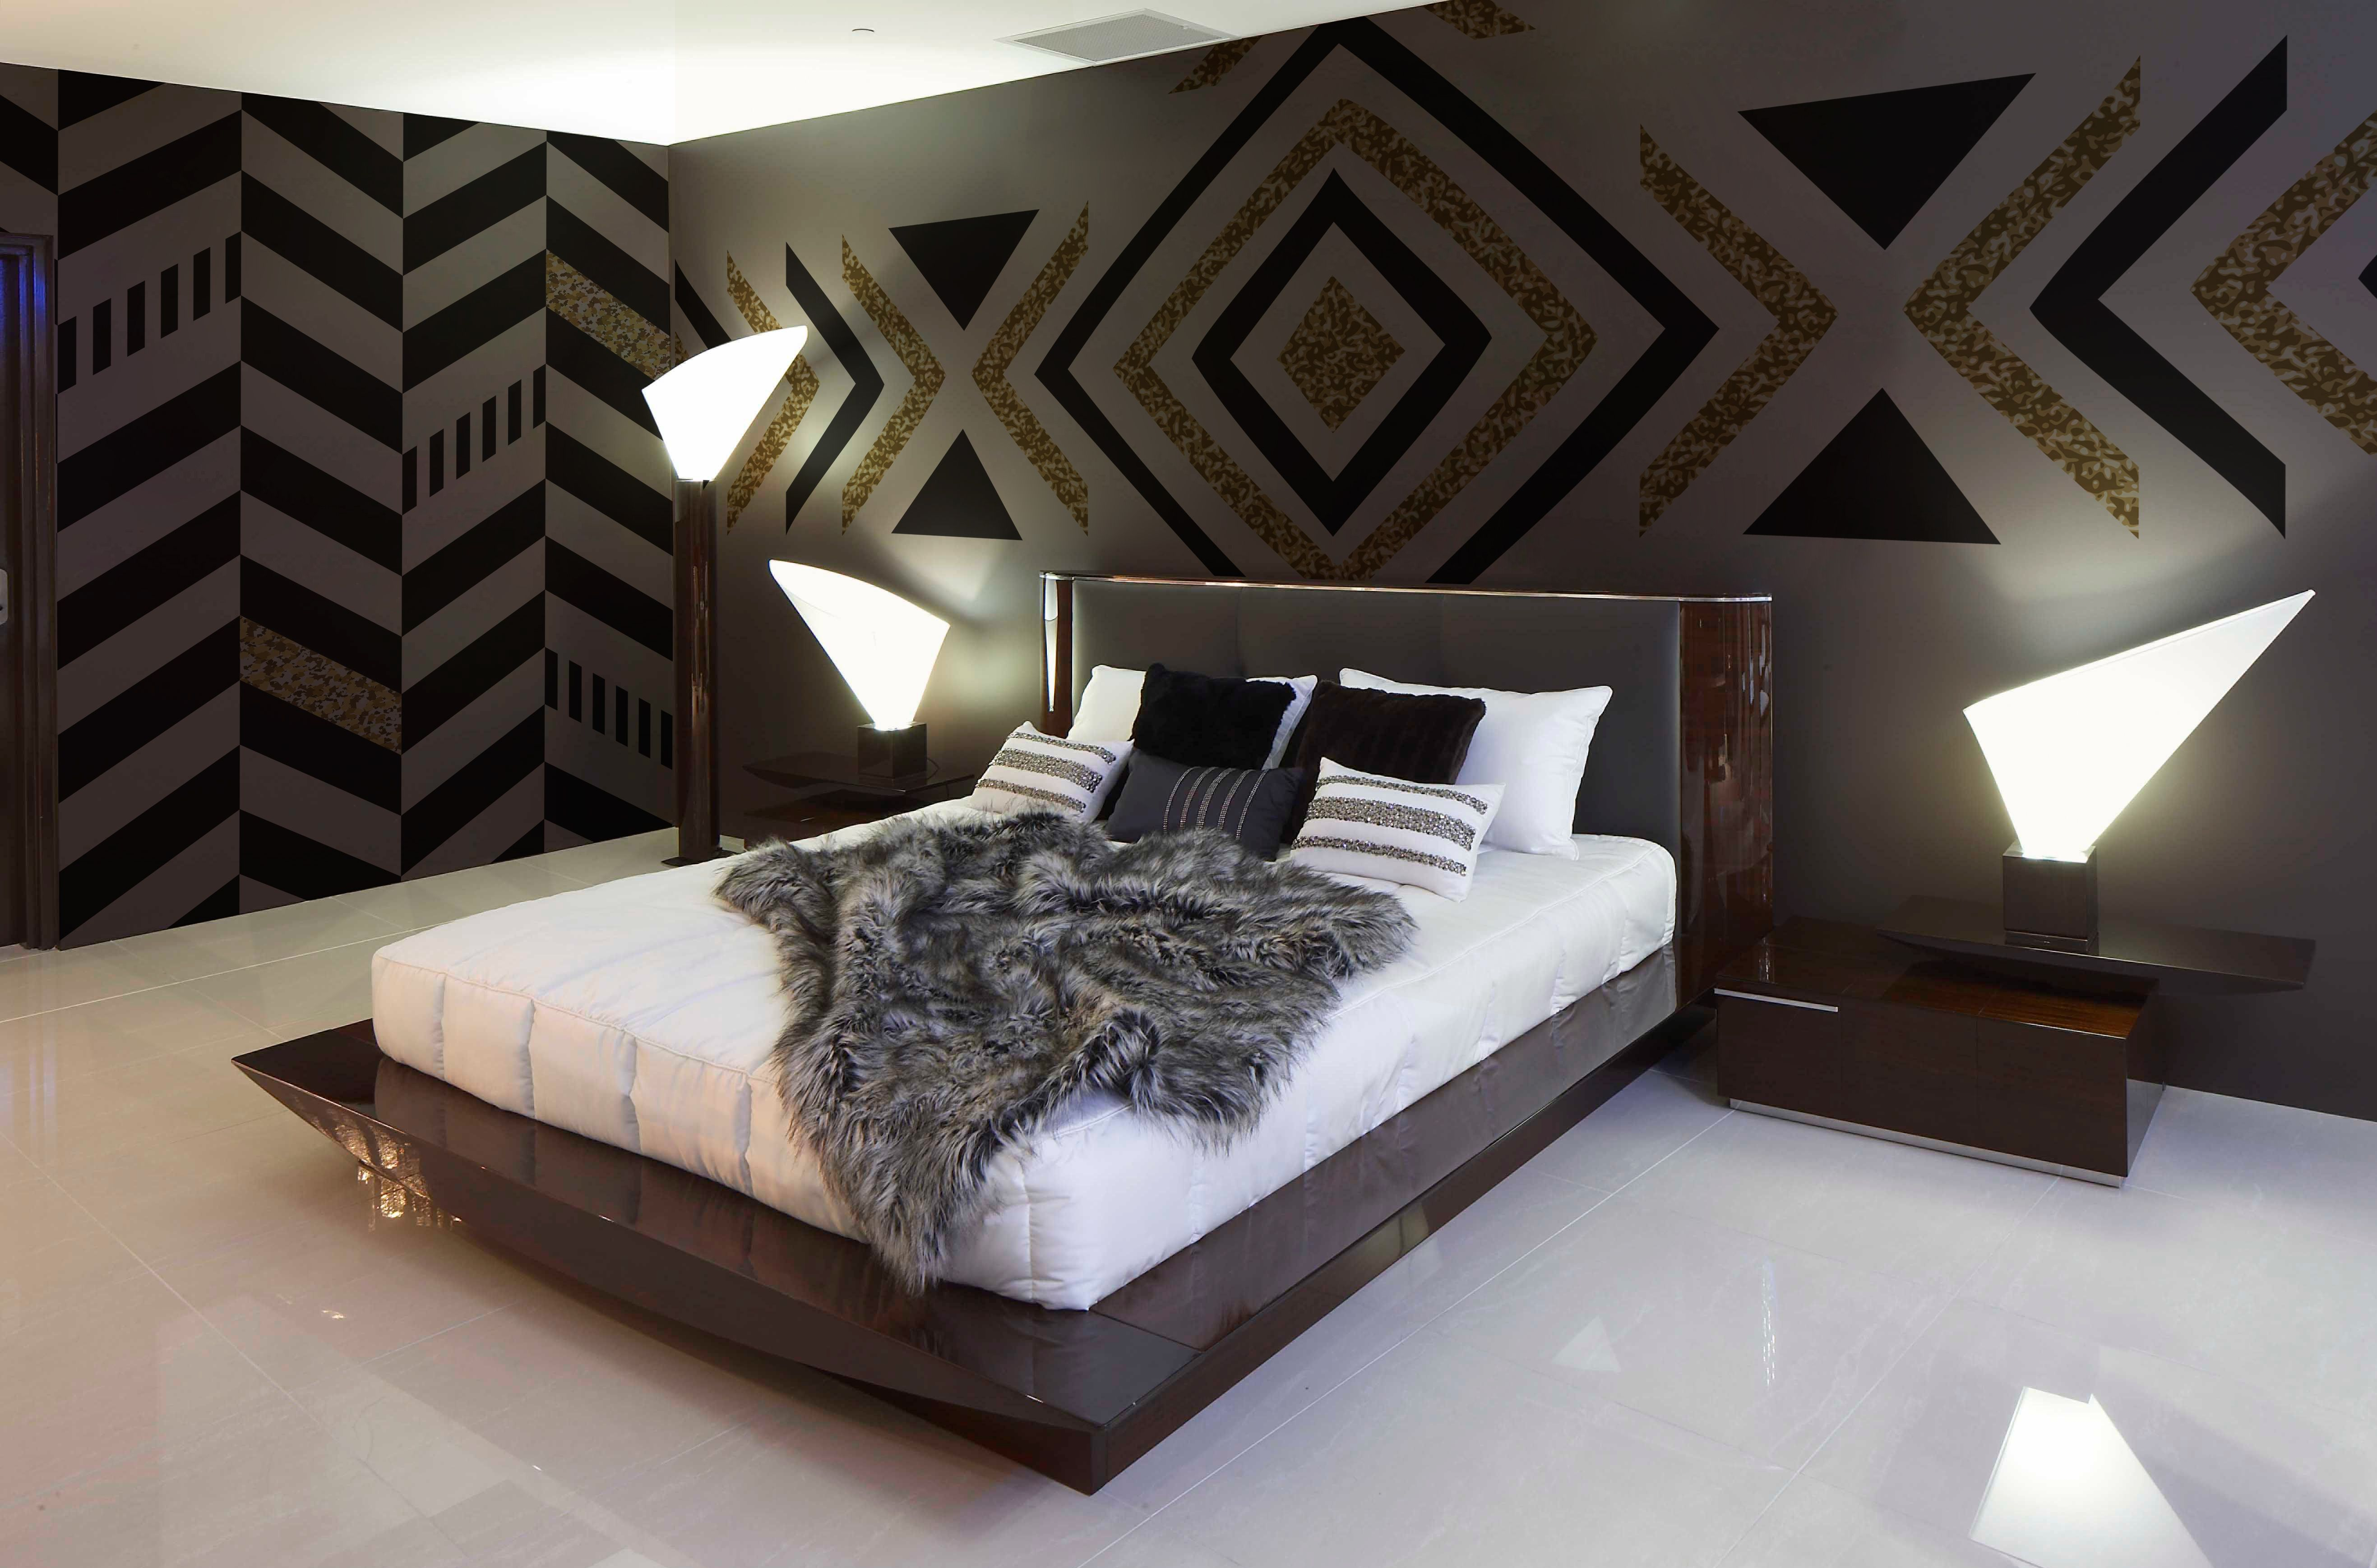 Black And Gold Zig Zag Contemporary Bedroom 365 Day Money Back Guarantee Consulting On The Patte Contemporary Bedroom Contemporary Decor Bedroom Design